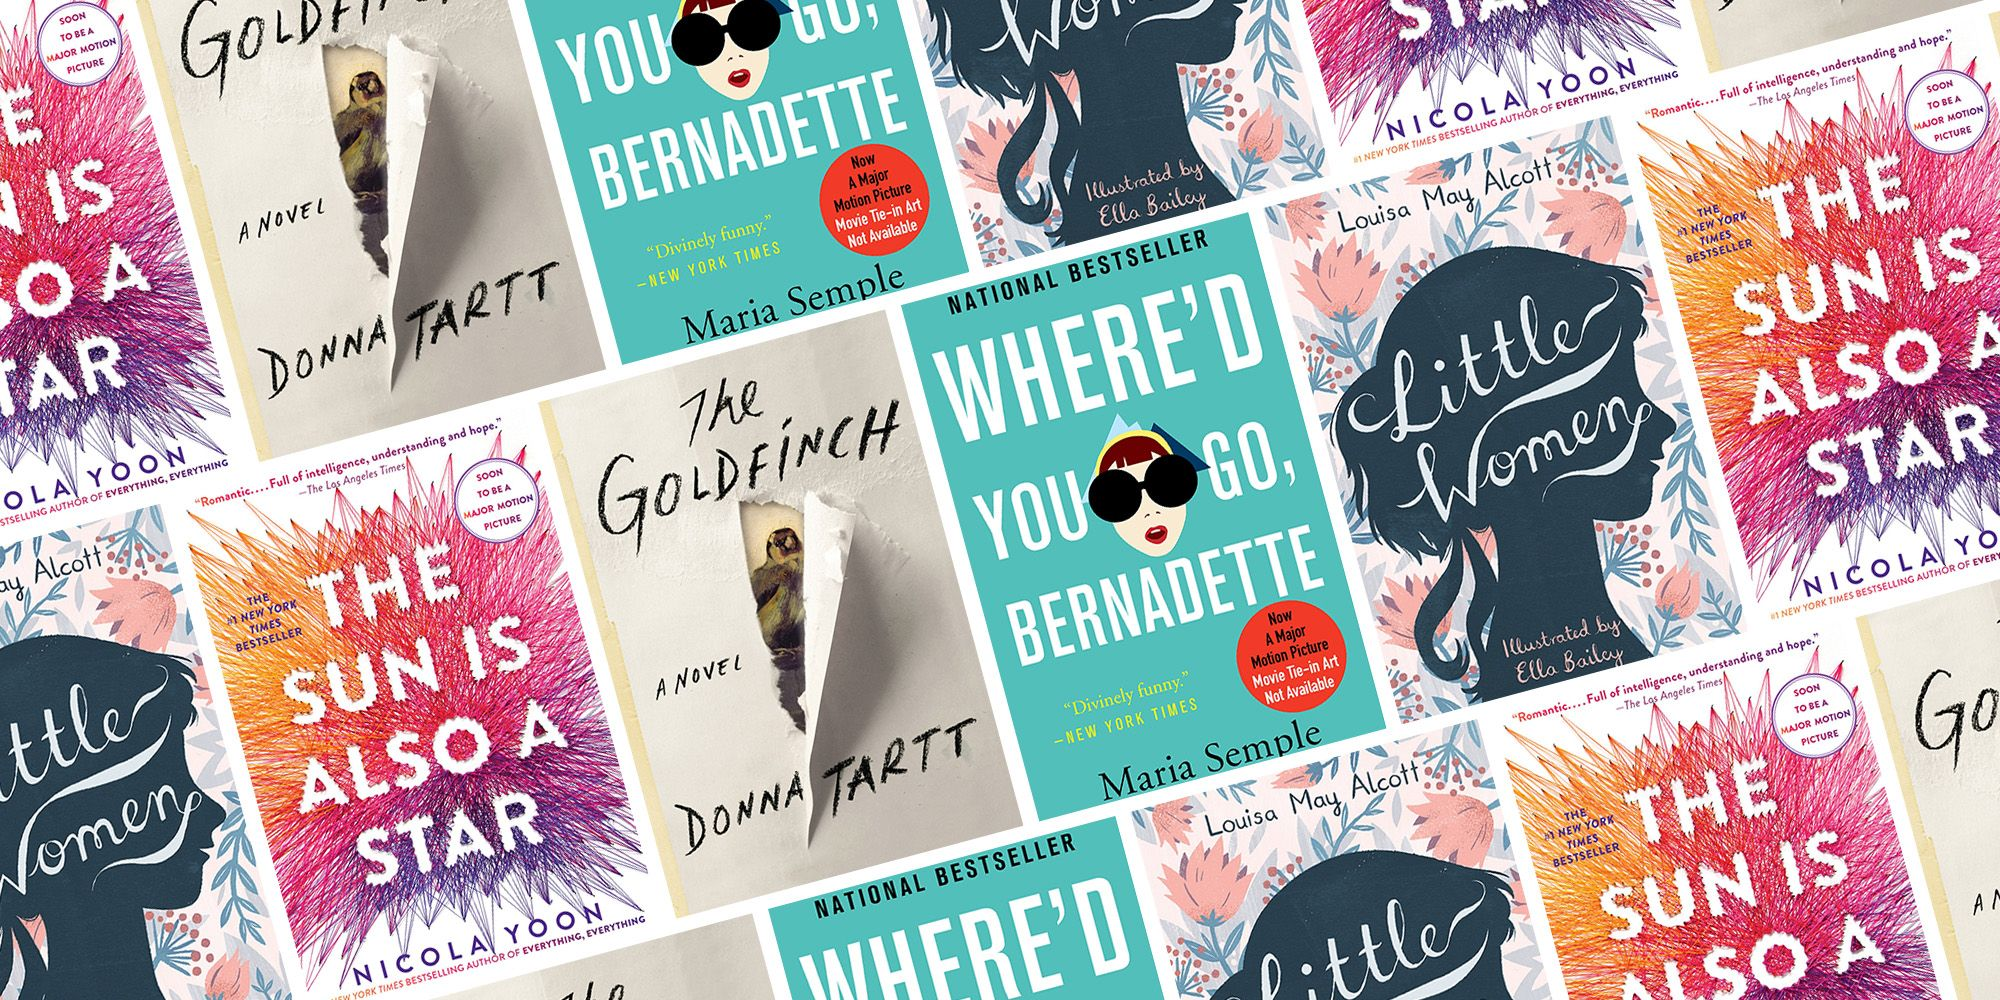 25 Books to Read Before They Become Movies in 2019